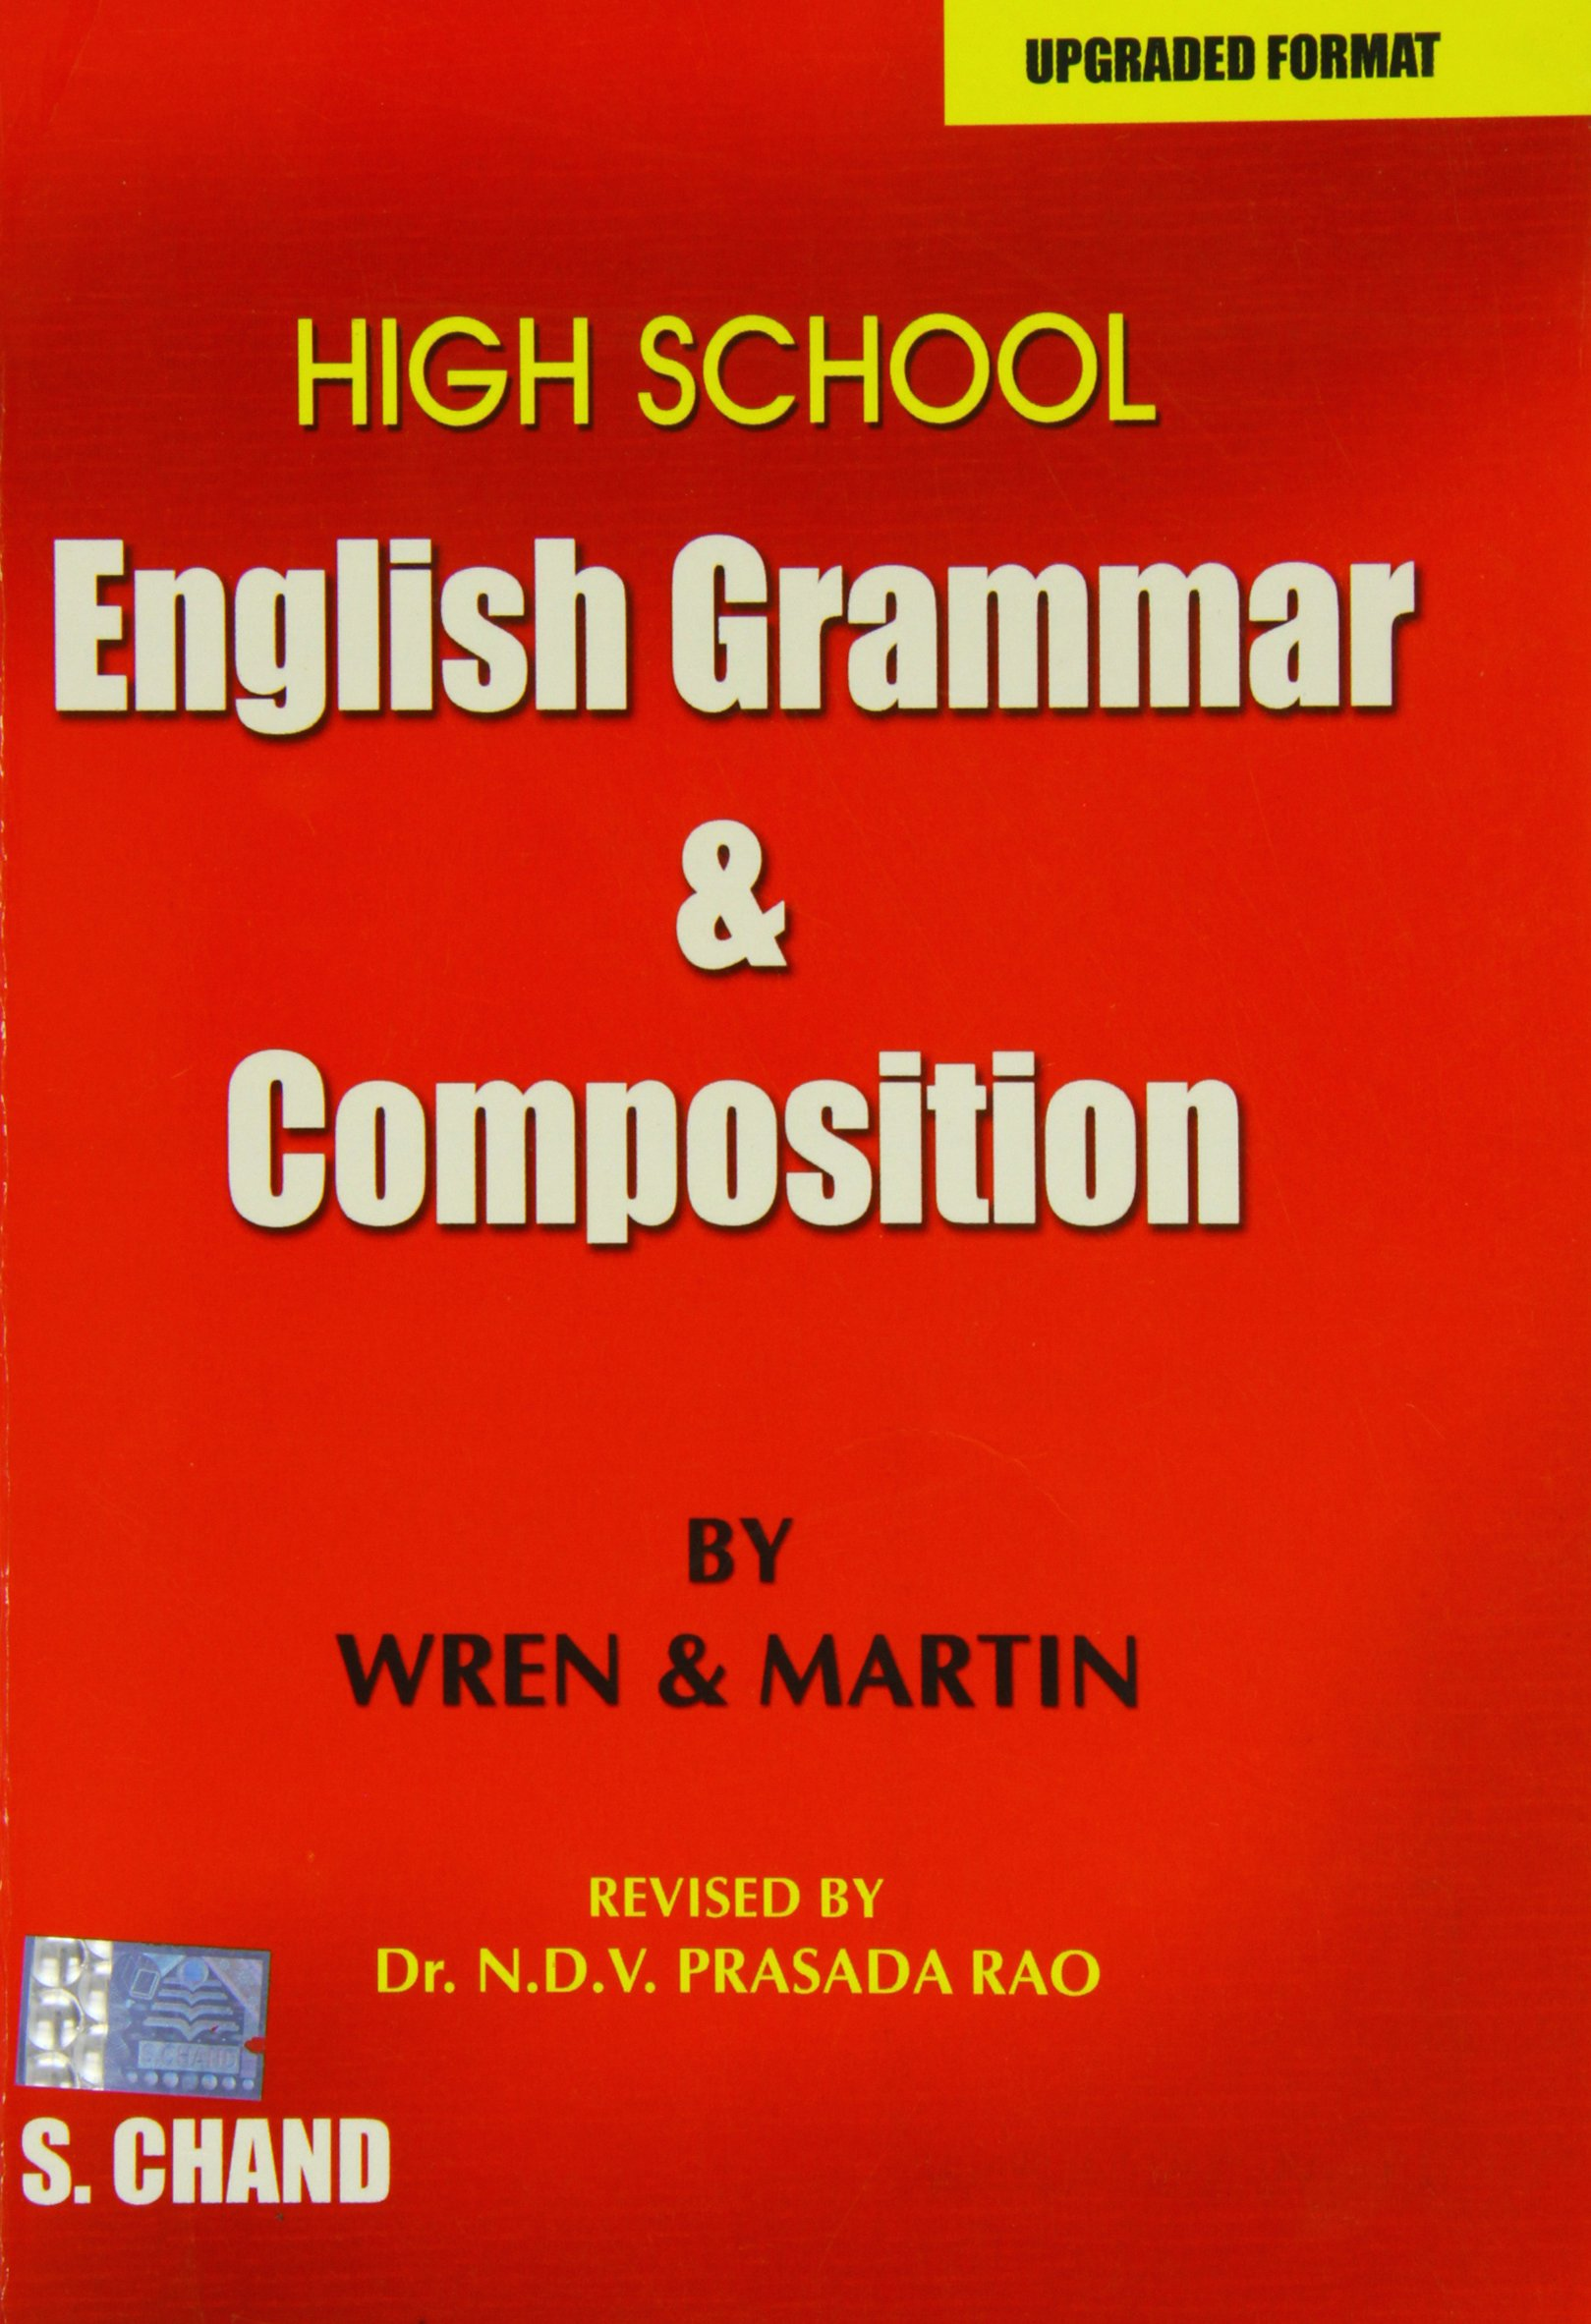 High School Grammar and Composition by Wren & Martin